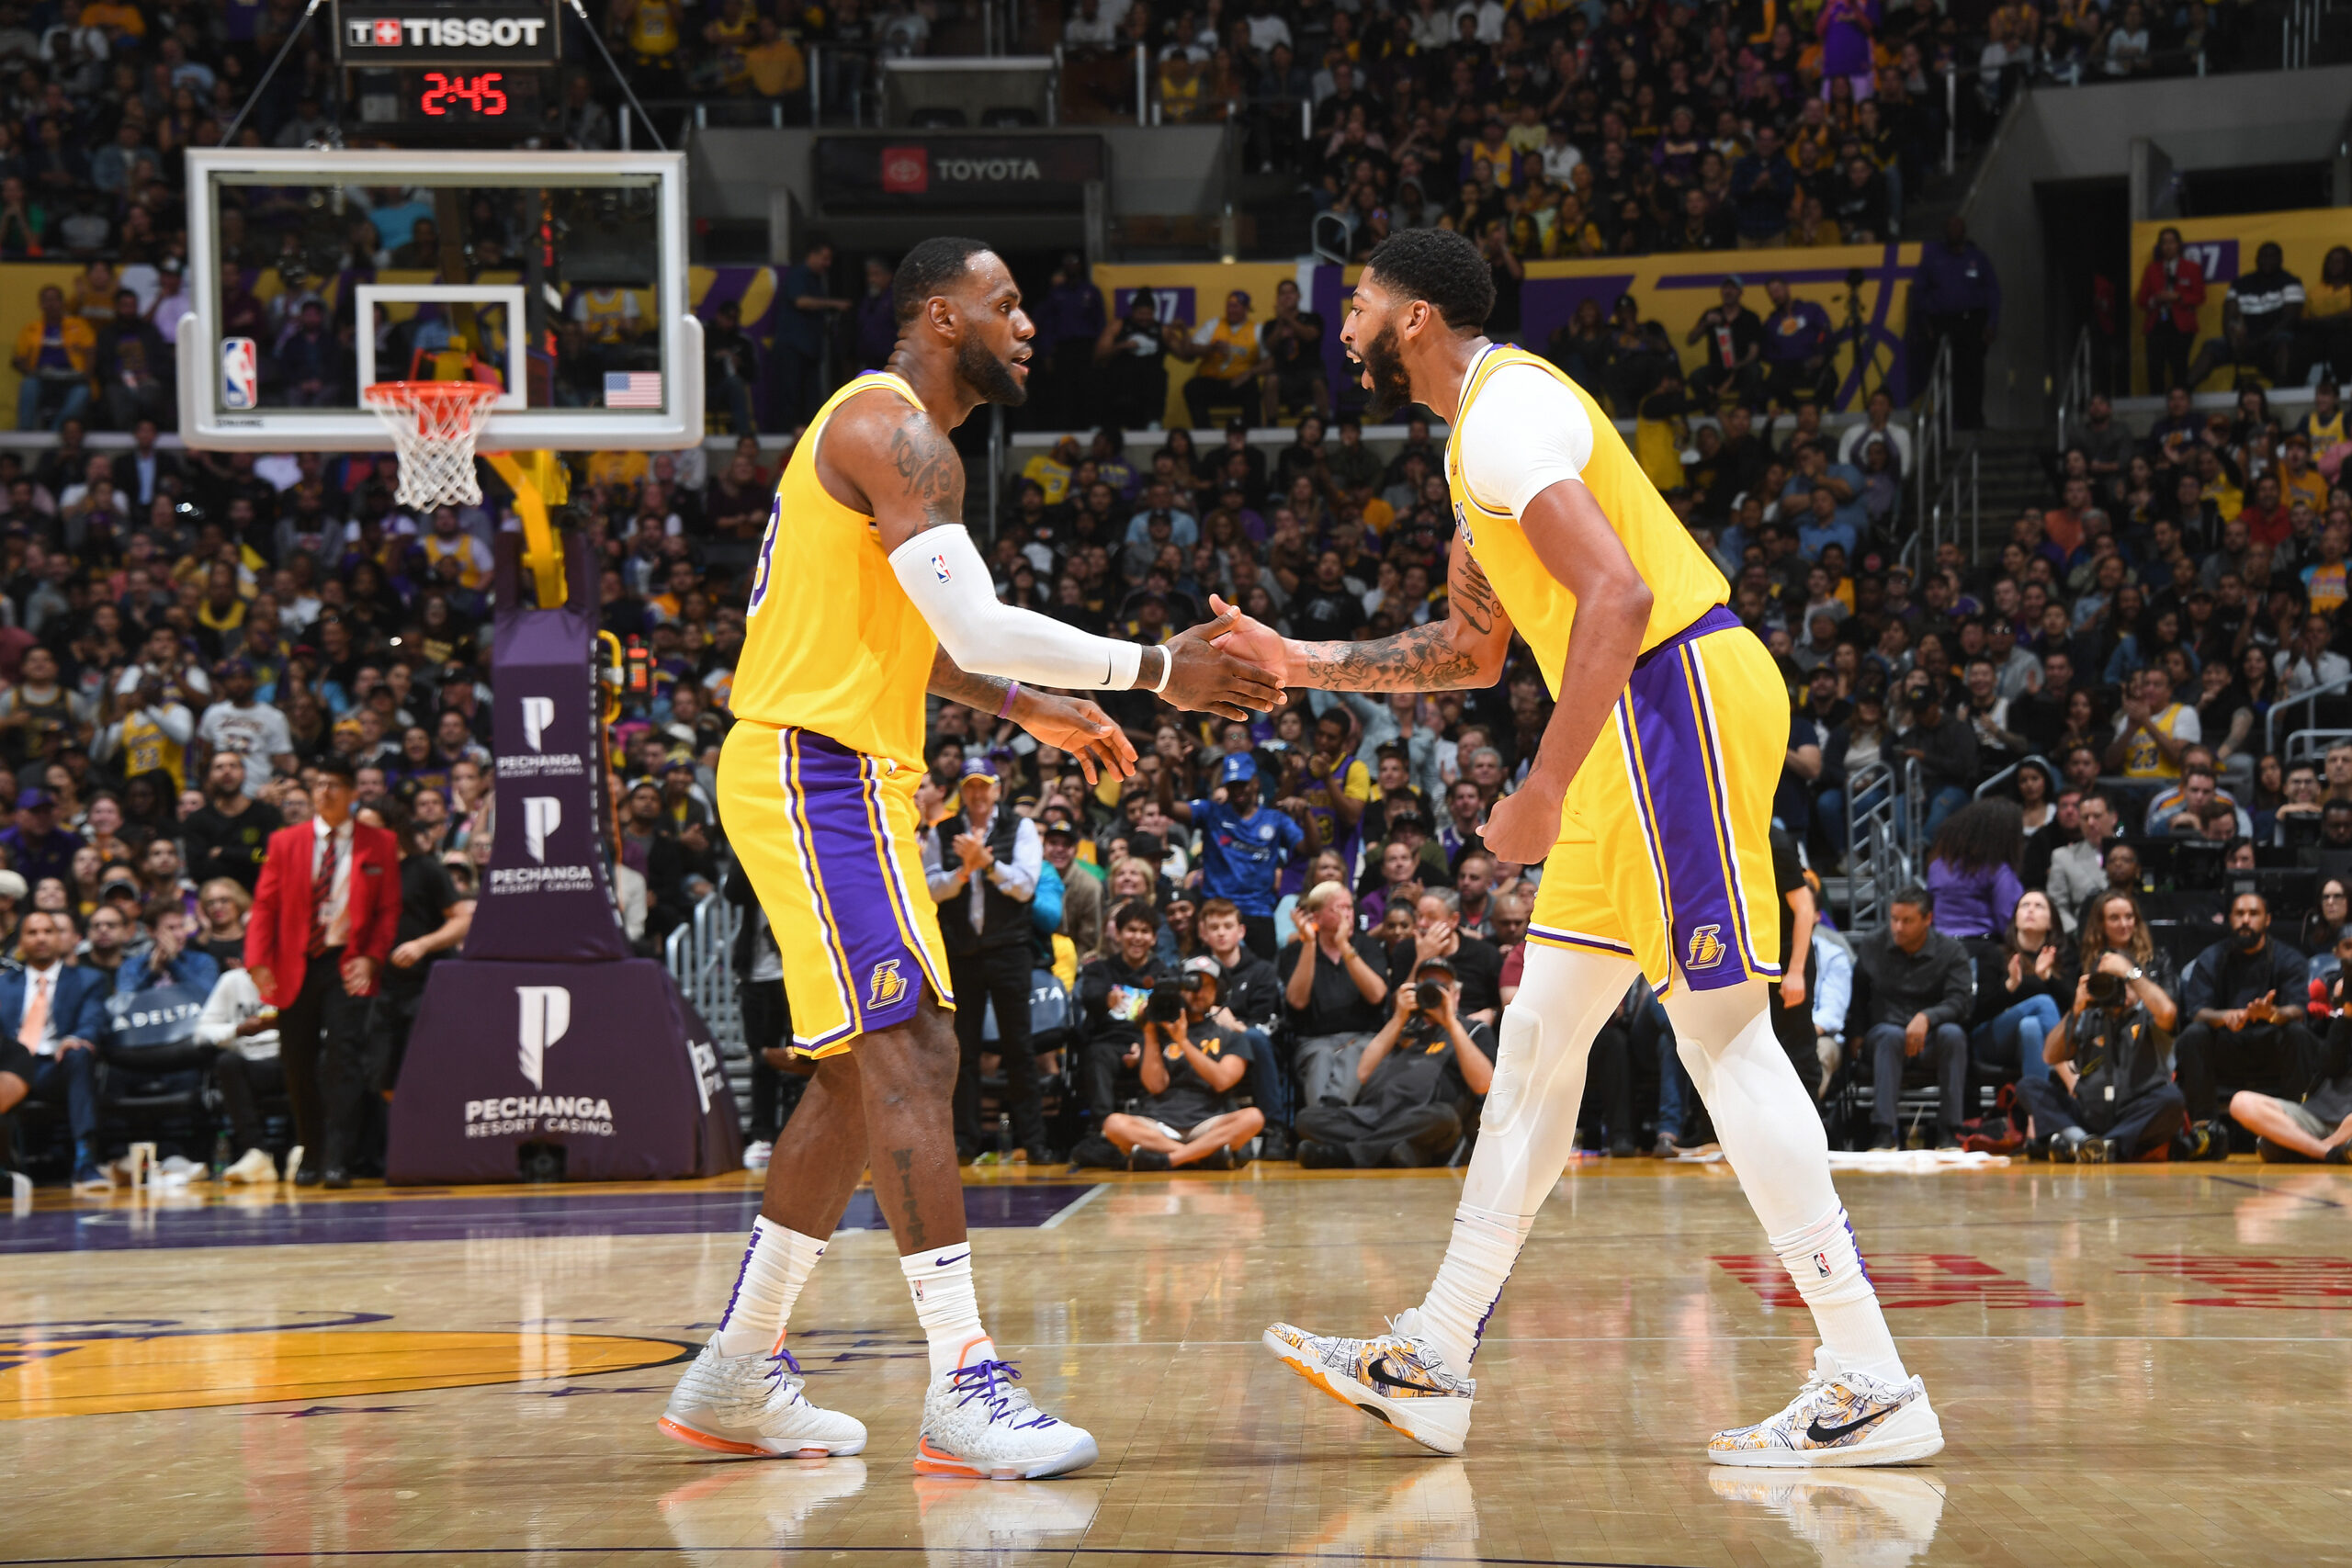 Will the Lakers be too experienced or just too old?